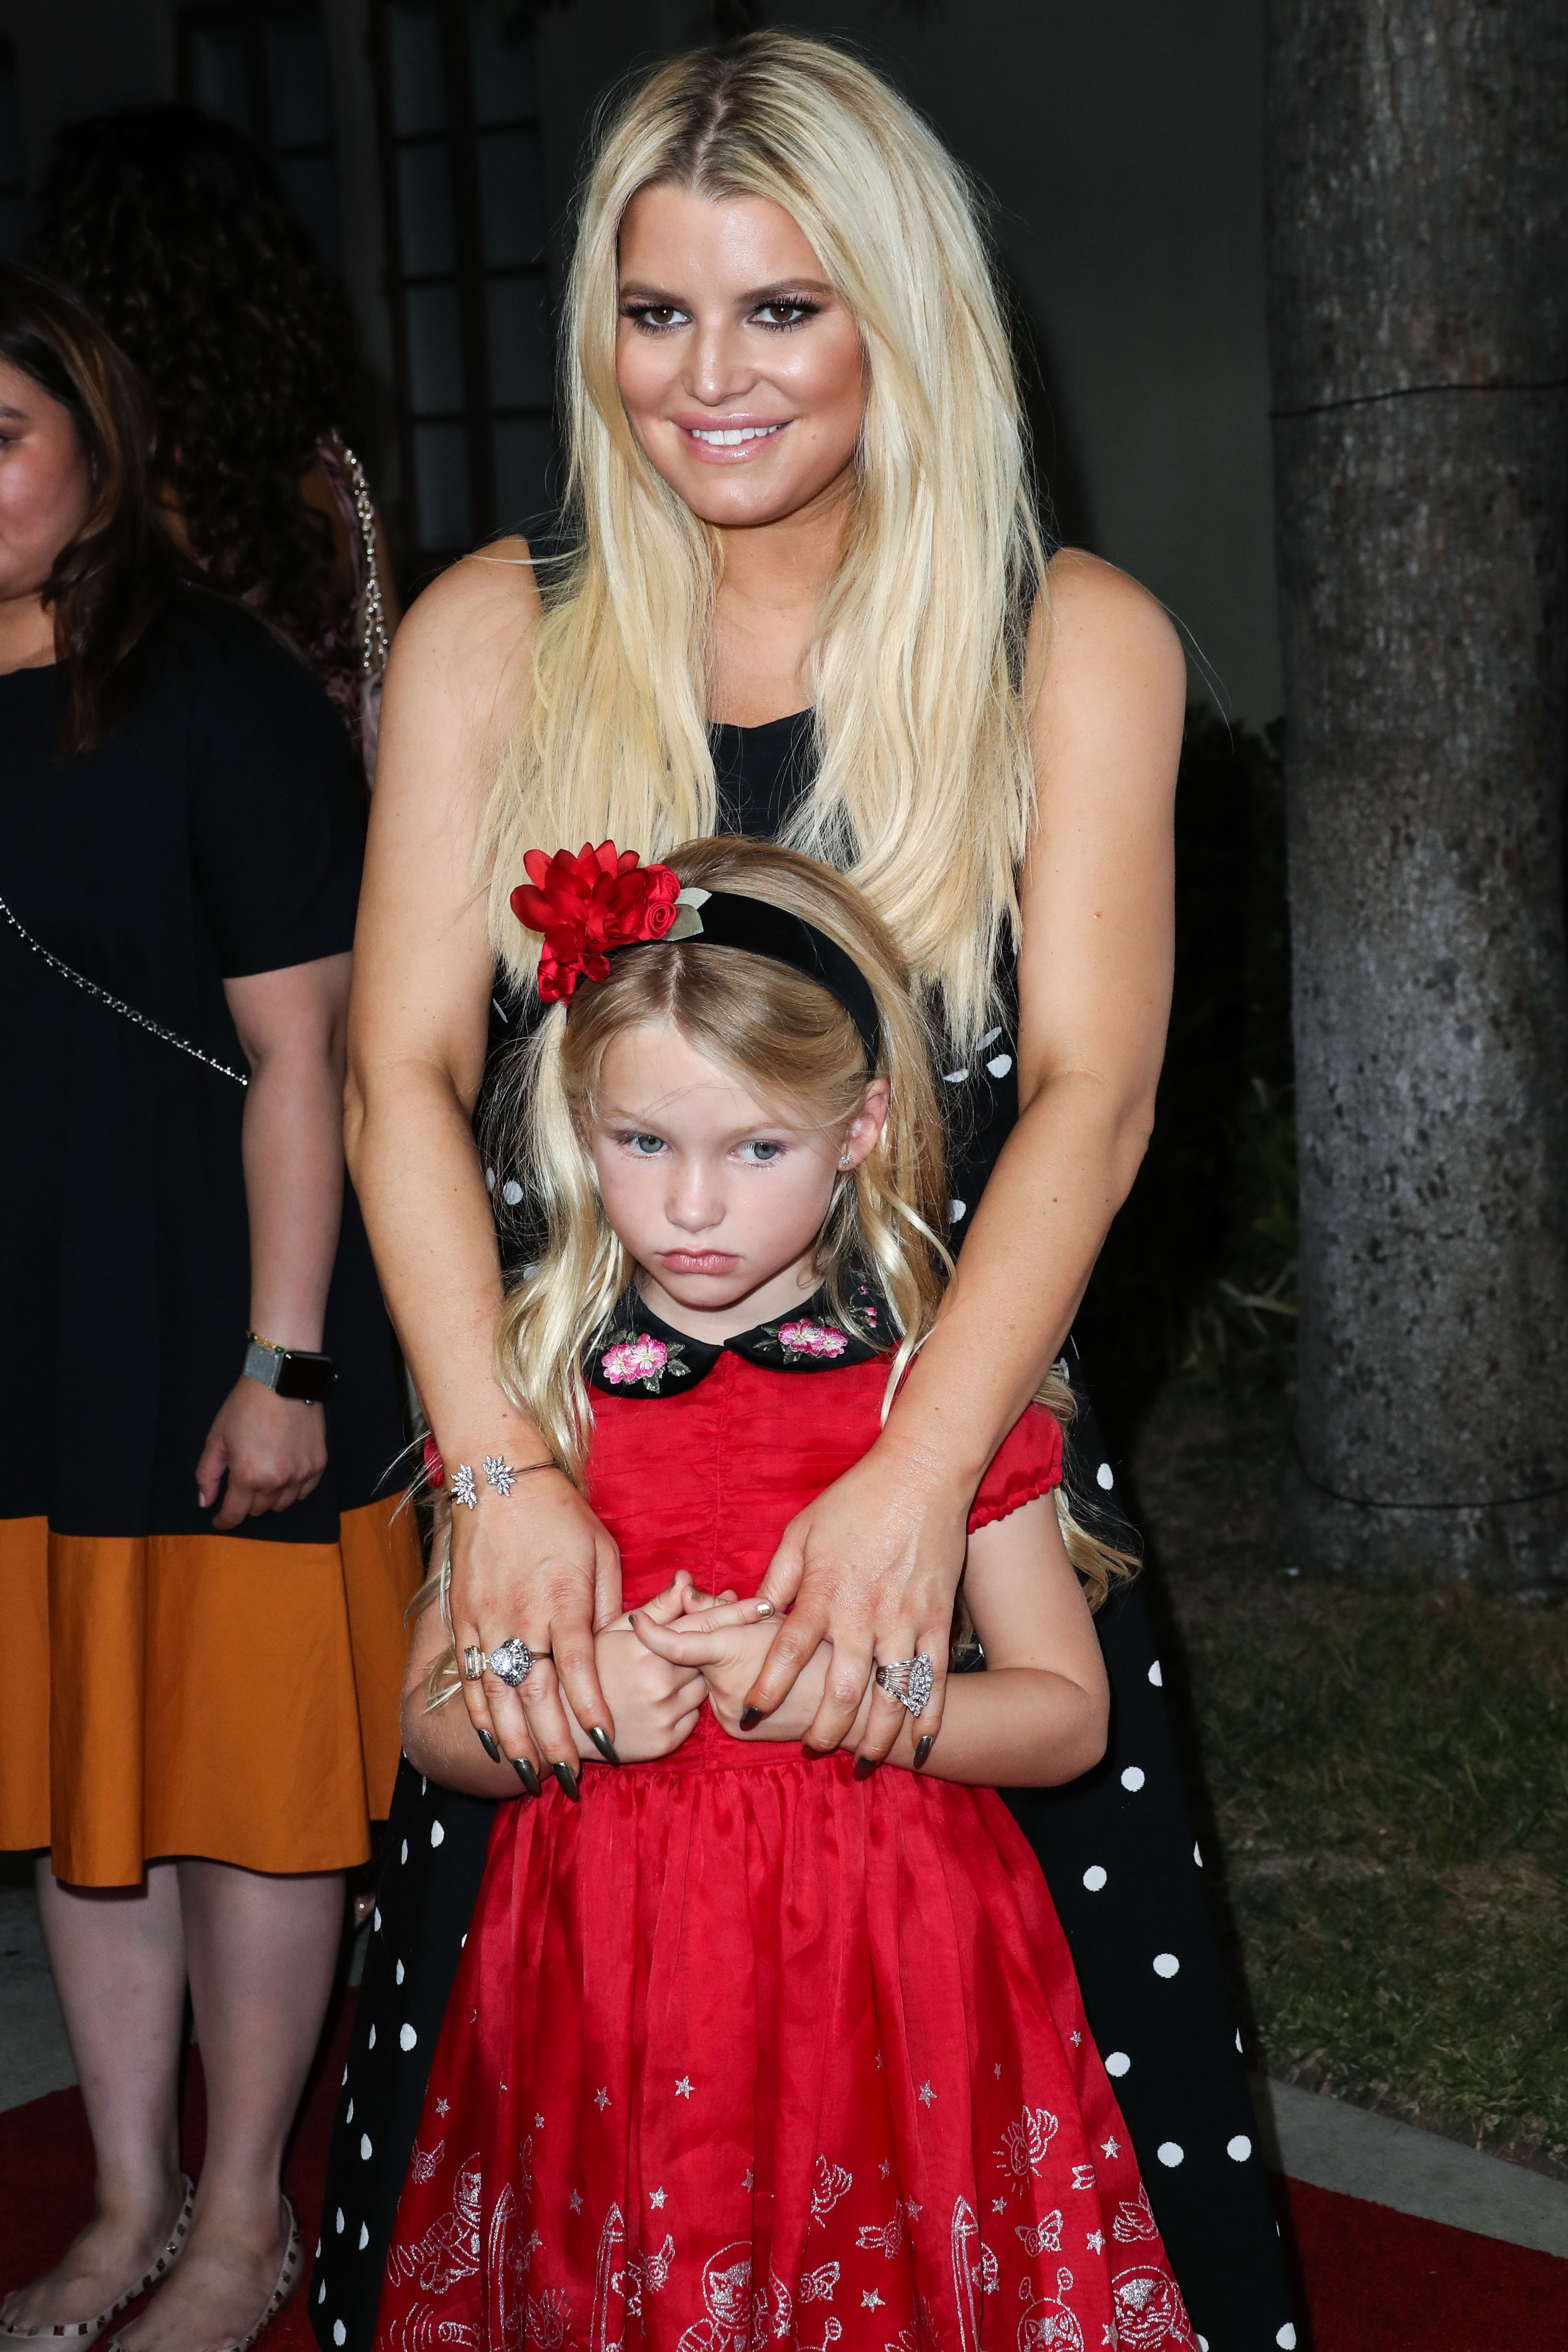 HOLLYWOOD, LOS ANGELES, CA, USA - OCTOBER 24: Singer/actress Jessica Simpson and daughter Maxwell Johnson arrive at the 2017 Princess Grace Awards Gala Kickoff Event held at Paramount Studios on October 24, 2017 in Hollywood, Los Angeles, California, United States. (Photo by Xavier Collin/Image Press Agency/Splash News) <P> Pictured: Jessica Simpson, Maxwell Johnson <B>Ref: SPL1609082  241017  </B><BR/> Picture by: Xavier Collin/IPA/Splash News<BR/> </P><P> <B>Splash News and Pictures</B><BR/> Los Angeles:	310-821-2666<BR/> New York:	212-619-2666<BR/> London:	870-934-2666<BR/> <span id=